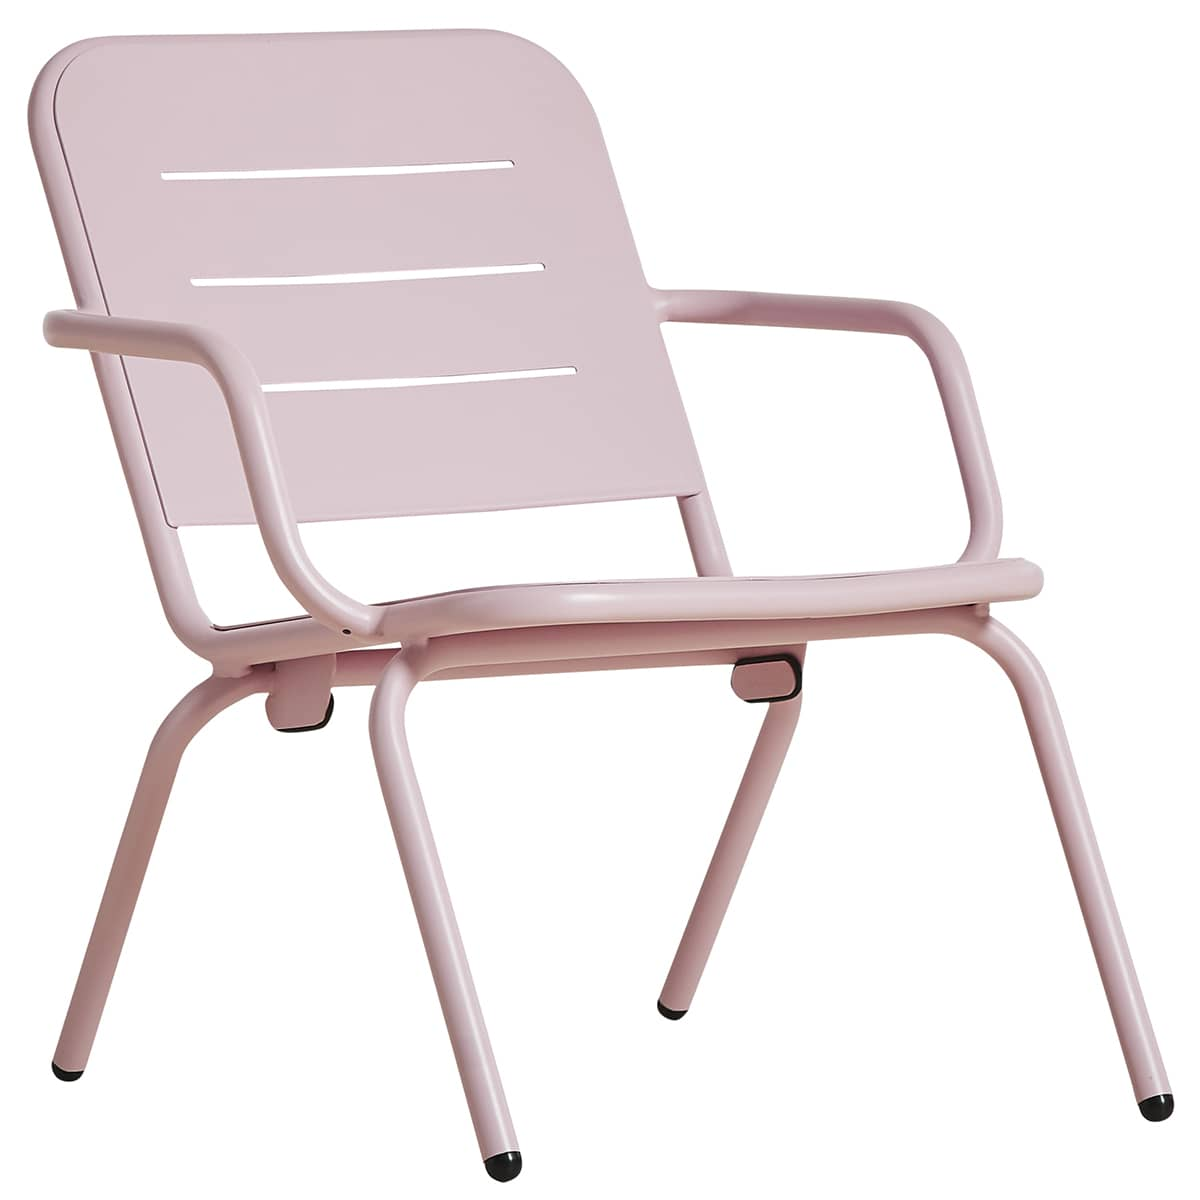 RAY outdoor lounge chair, by FASTING & ROLFF for WOUD